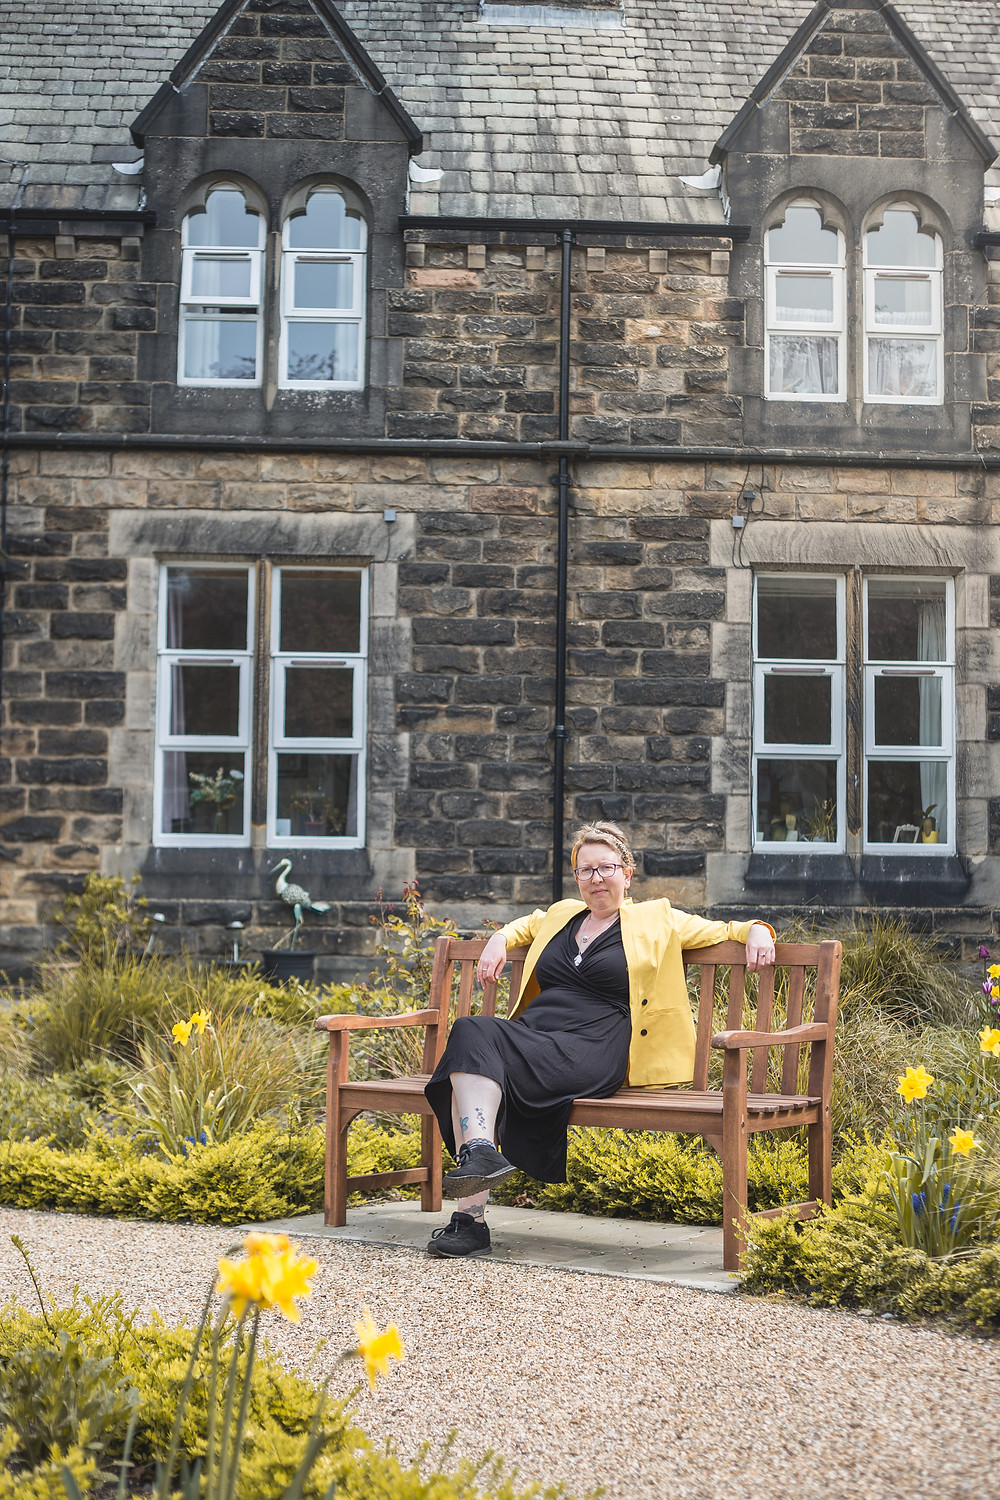 Sarah is sitting on a bench, wearing a black dress, black trainers and a yellow blazer. Behind her you can see arms houses as well as flowers